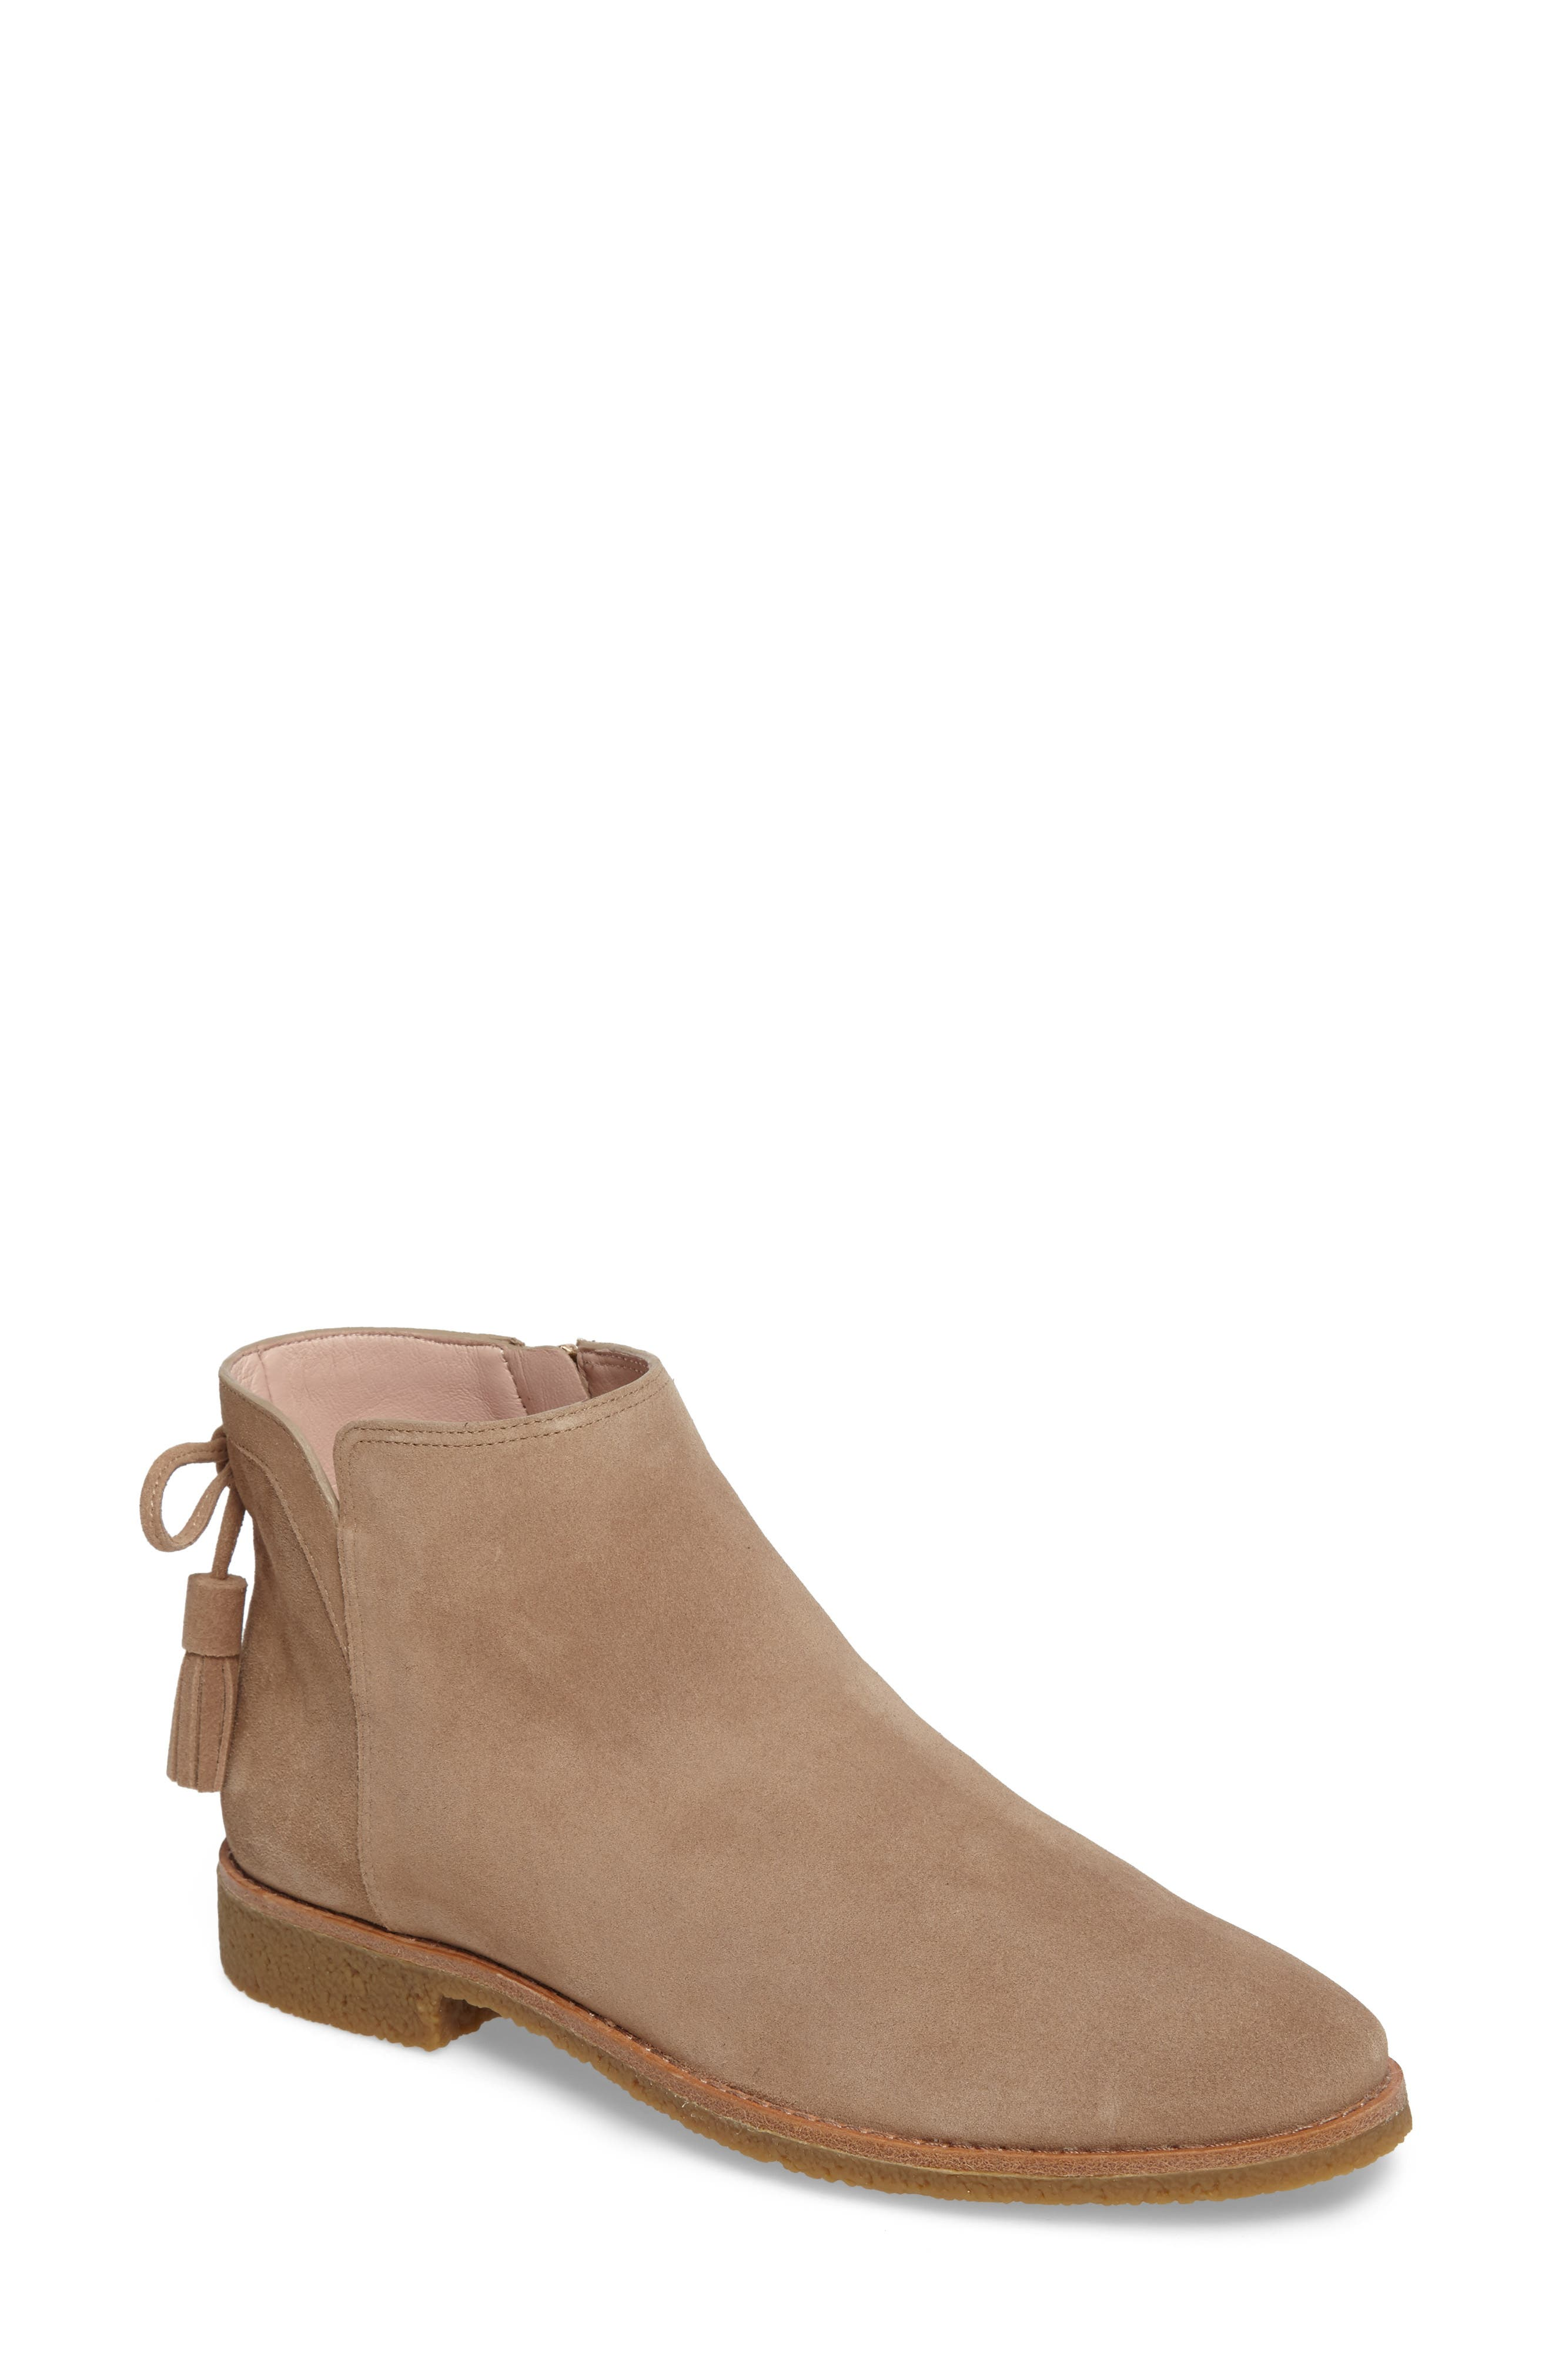 belleville bootie,                             Main thumbnail 1, color,                             Desert Suede